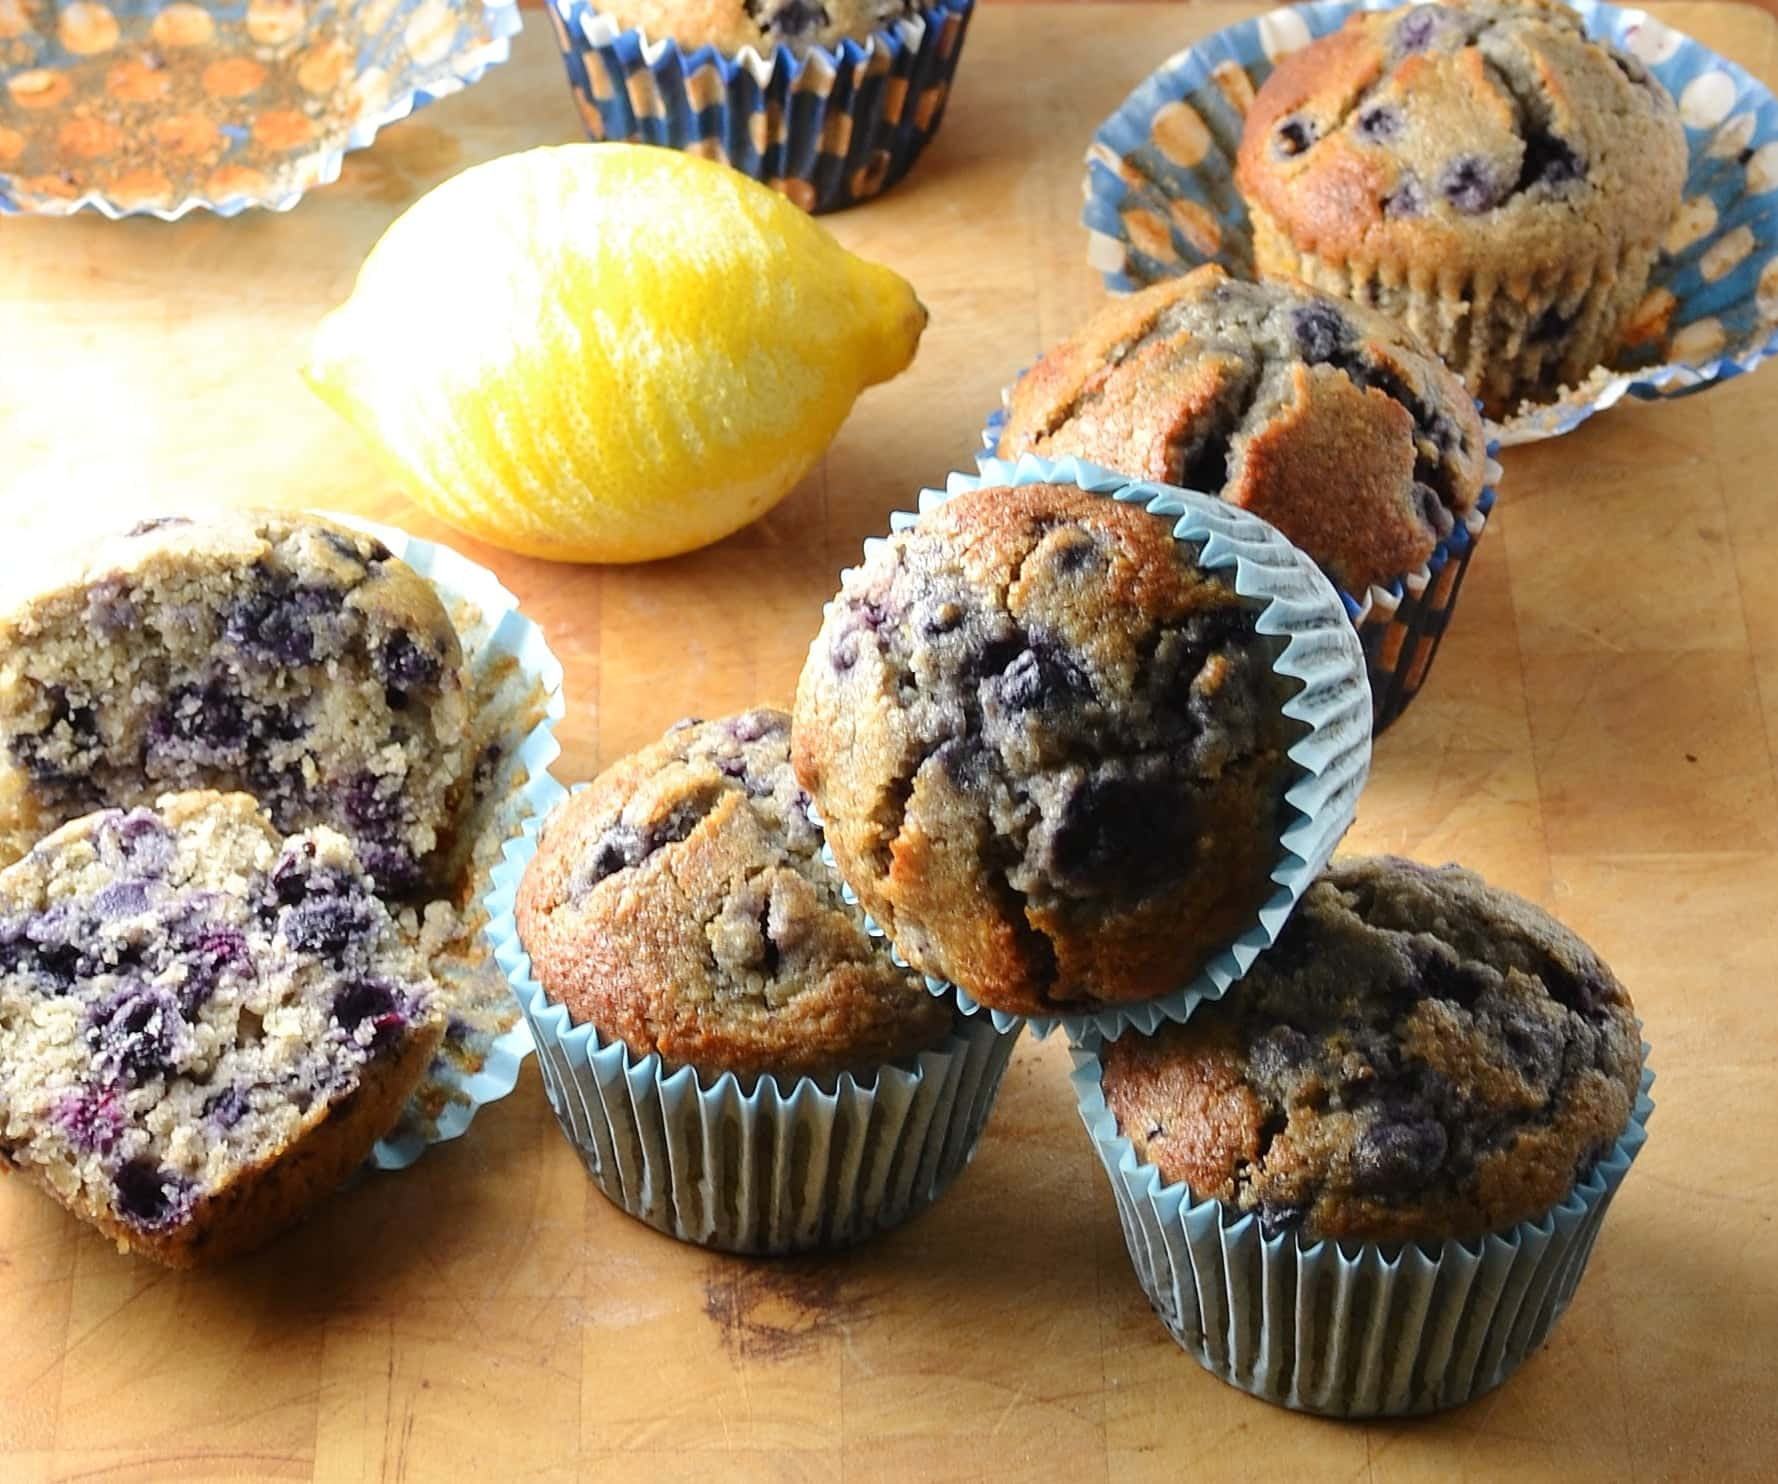 Close-up view of blueberry muffins with lemon in background on top of wooden table.